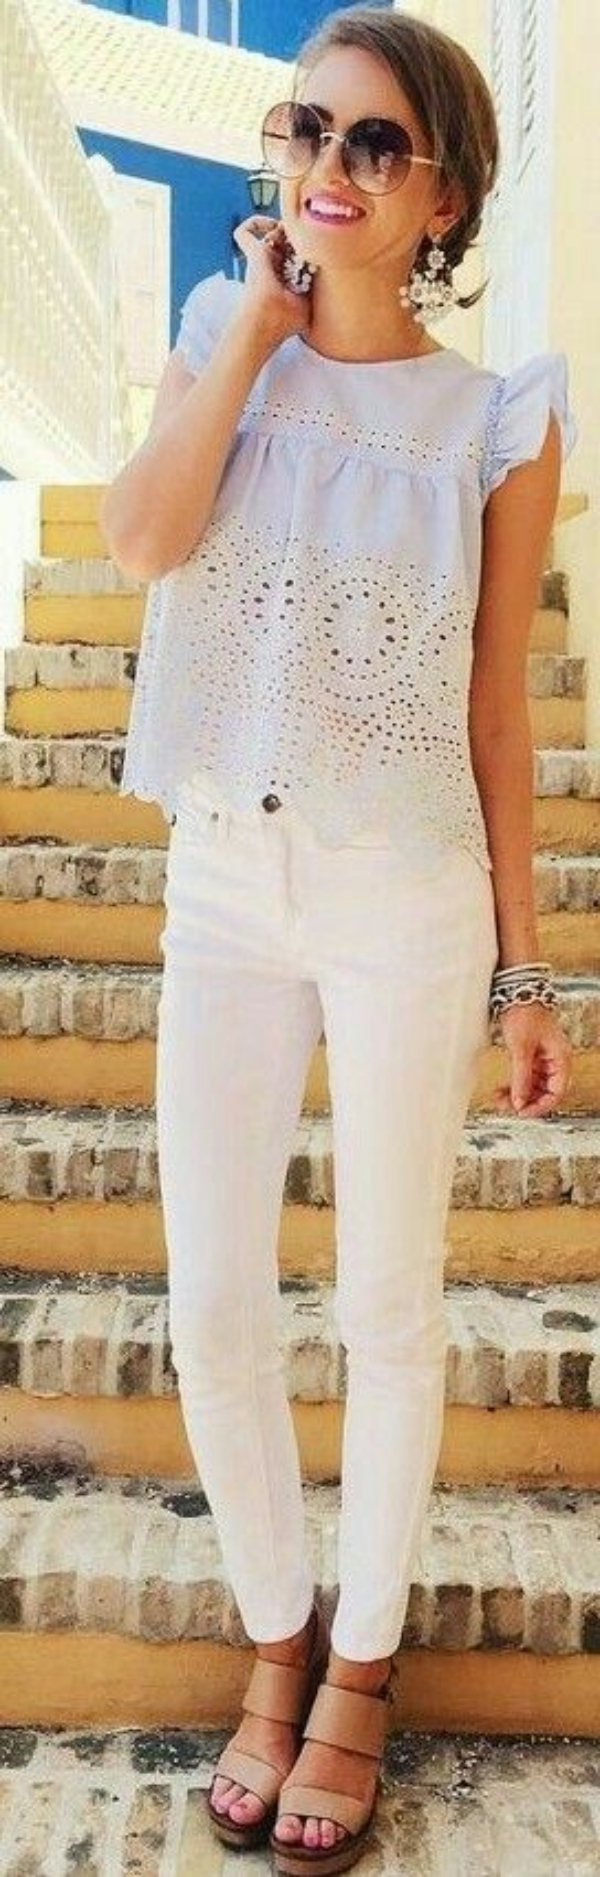 Preppy-Fashion-Outfits-13